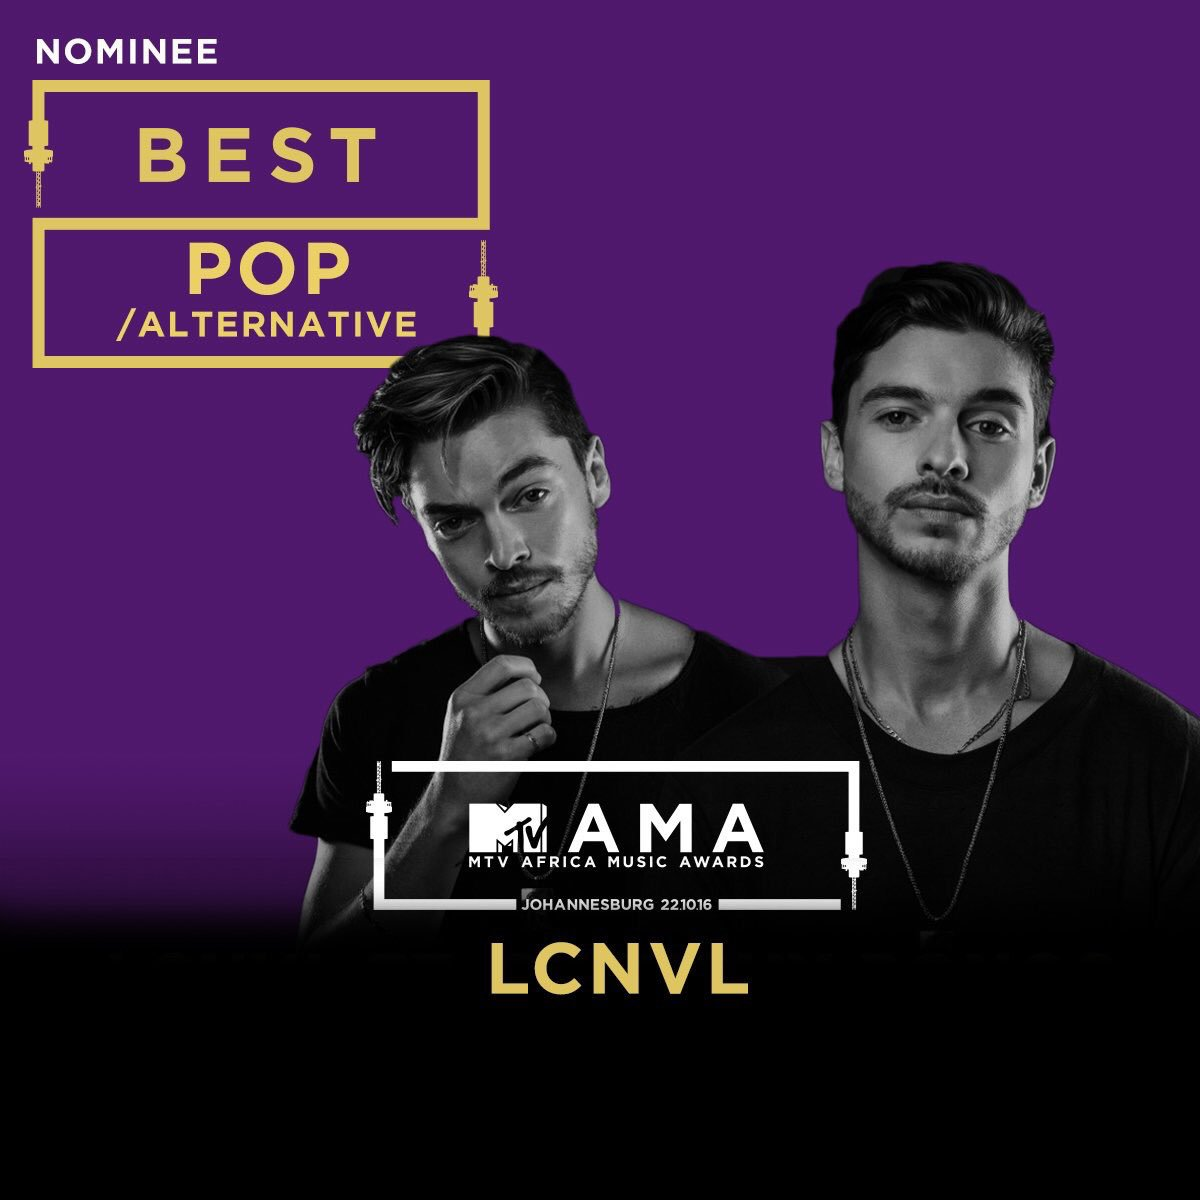 Don't forget to keep those votes coming!   Just tweet the following:   #MAMAVote @Locnville #BestPop https://t.co/GLmN0XjwQN